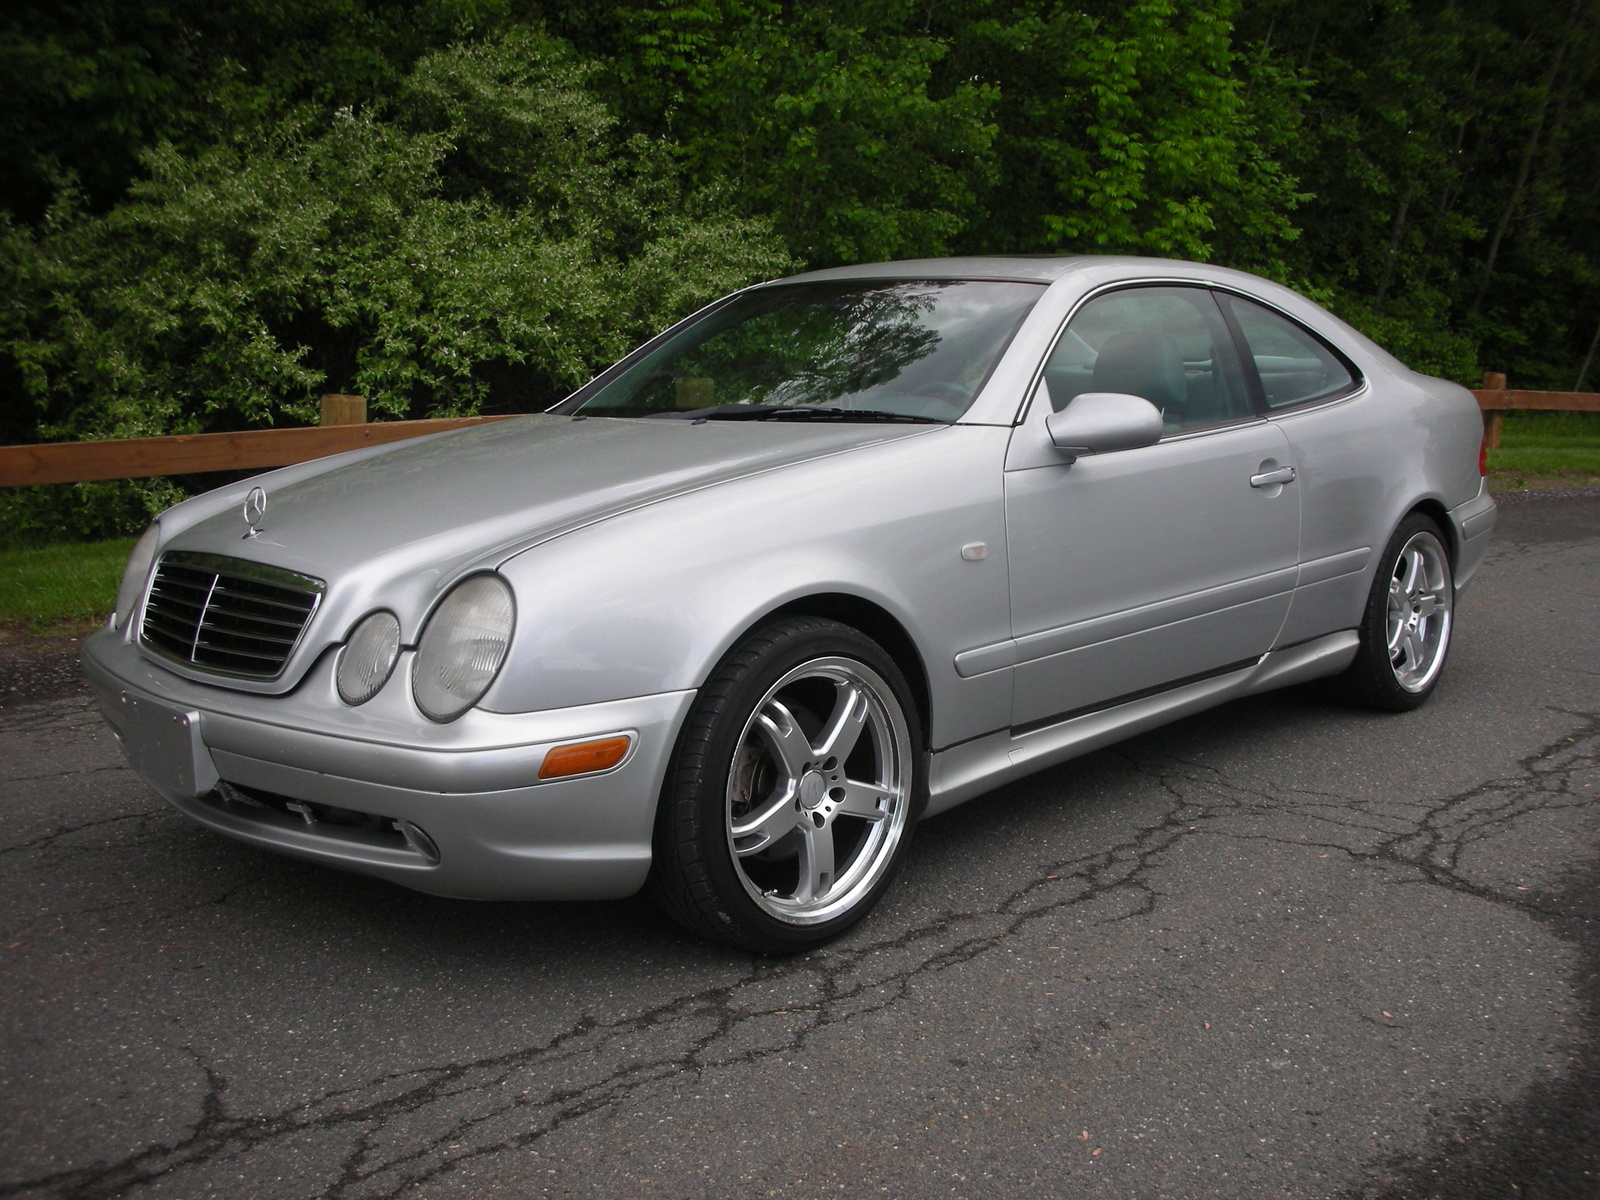 1999 mercedes benz clk class pictures cargurus for Mercedes benz clk 500